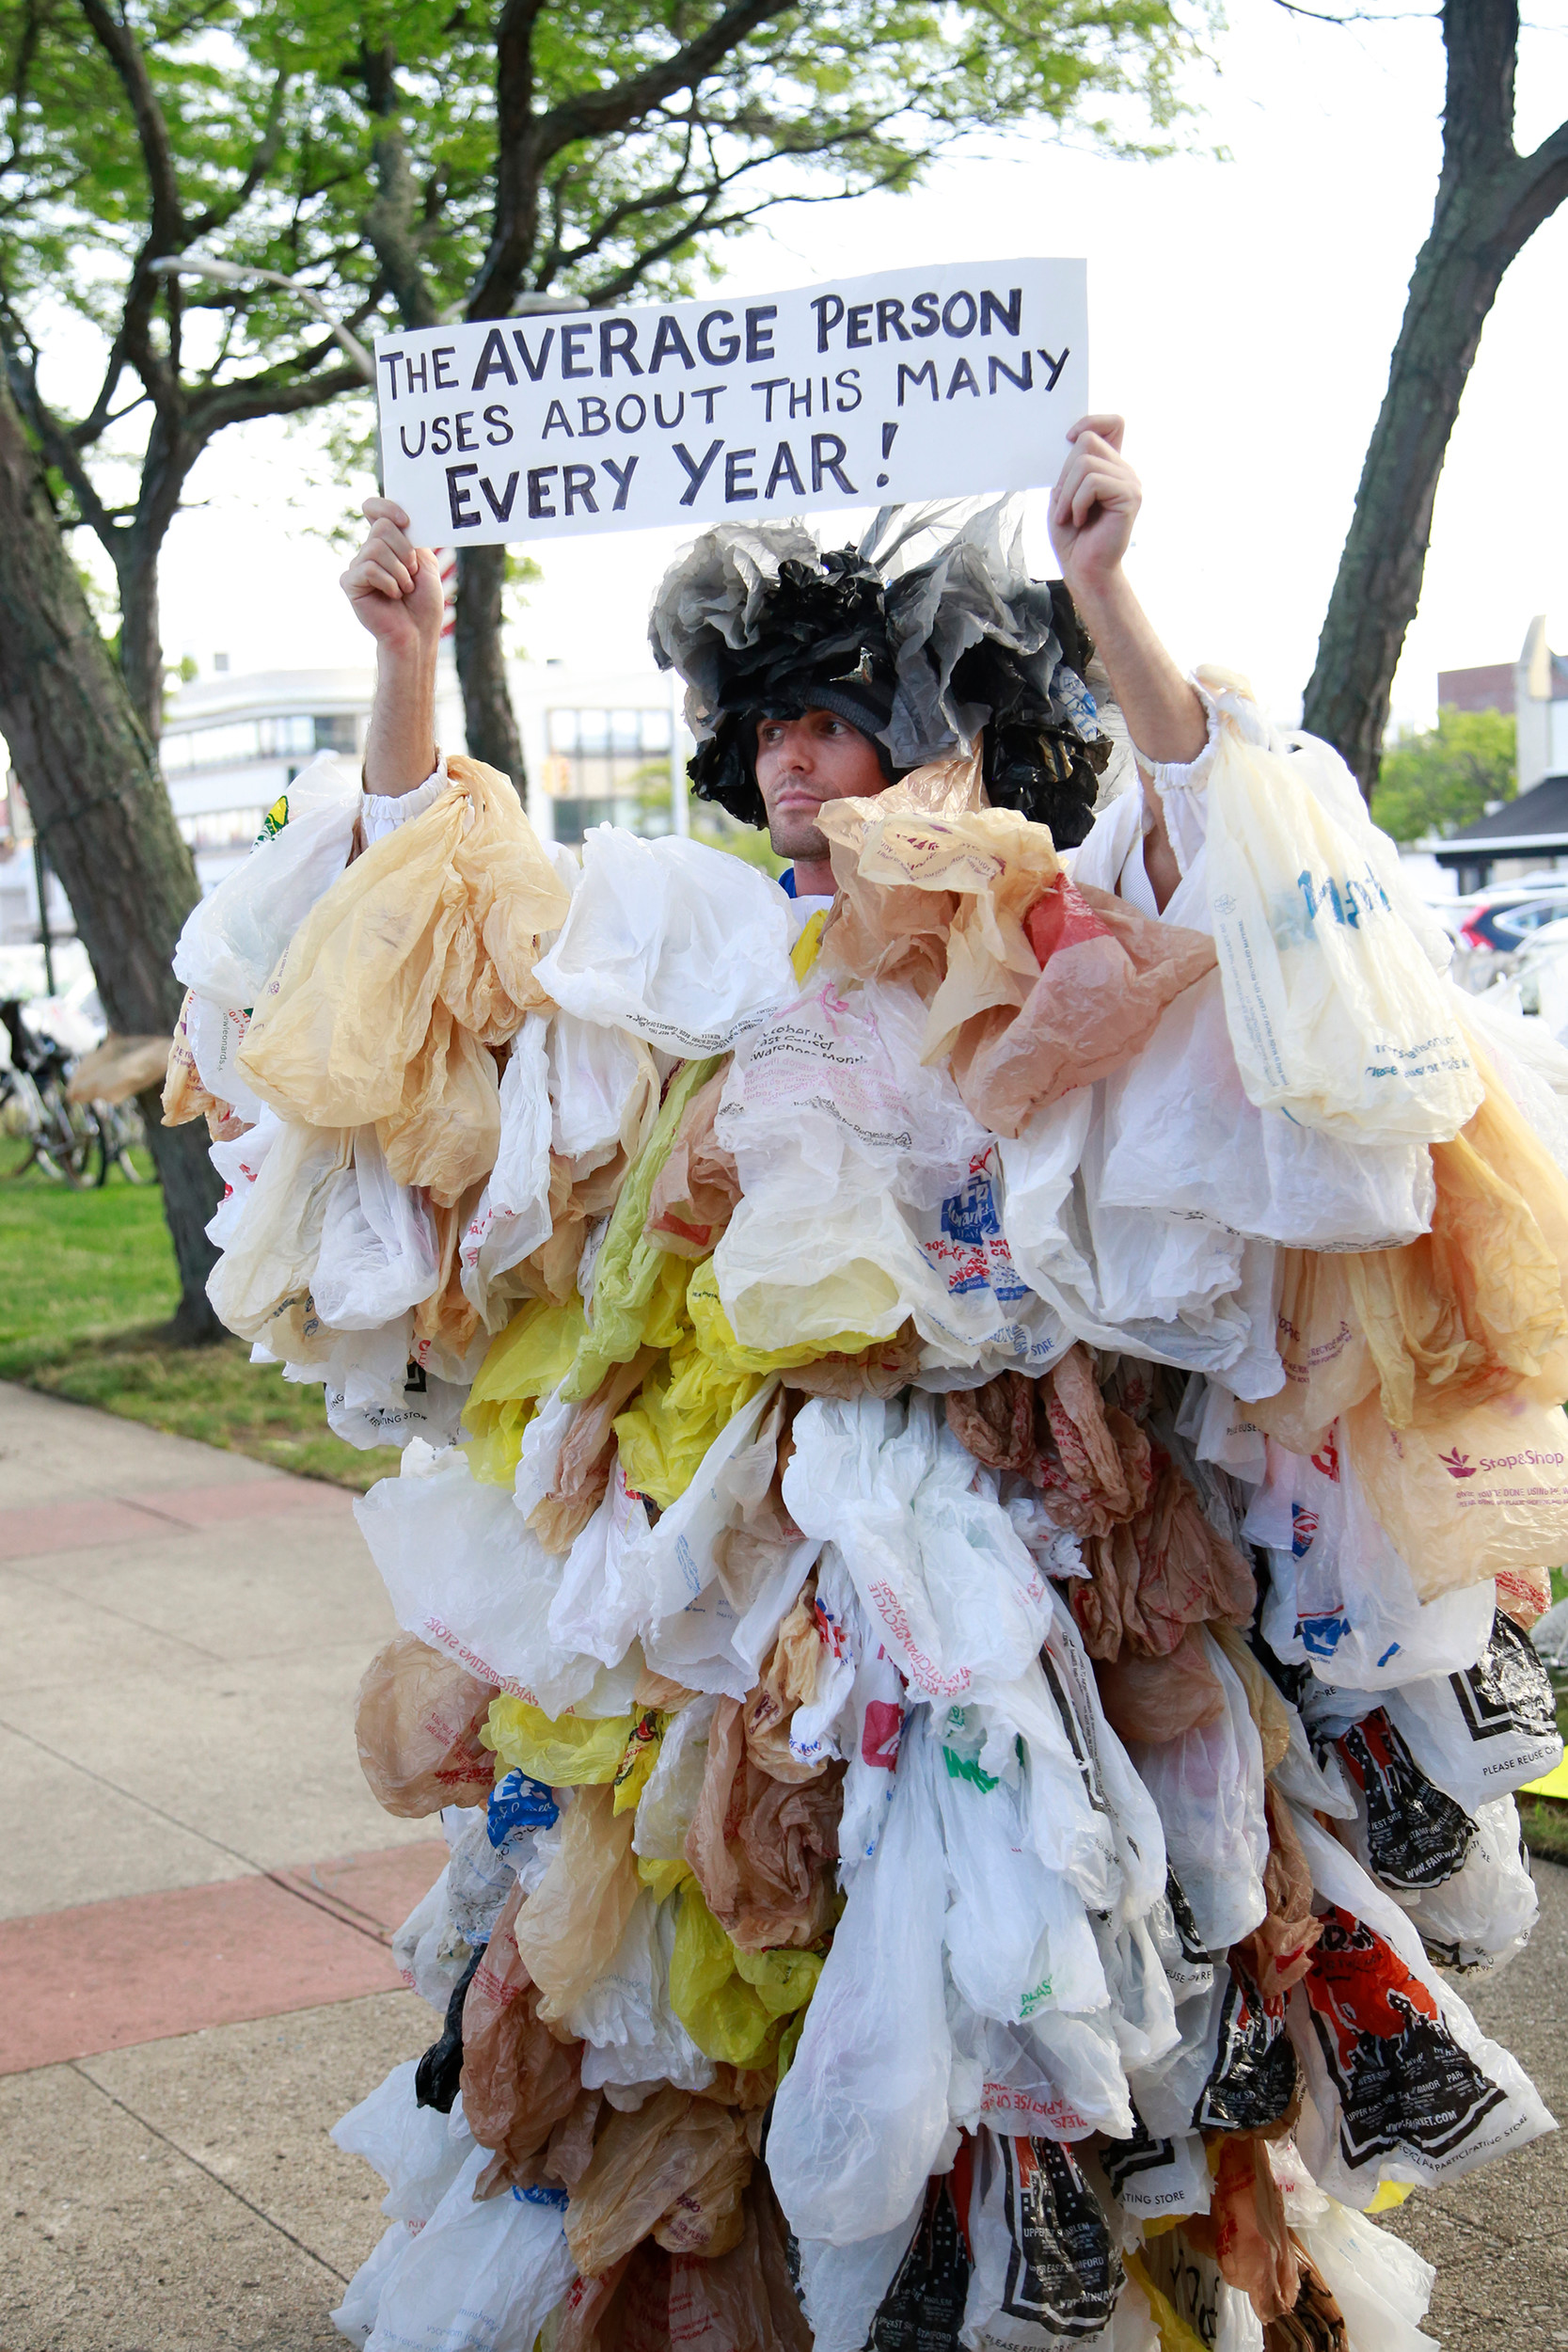 Long Beach resident Joseph Naham stuck hundreds of plastic bags to his body to show how many bags the average person uses in a year.